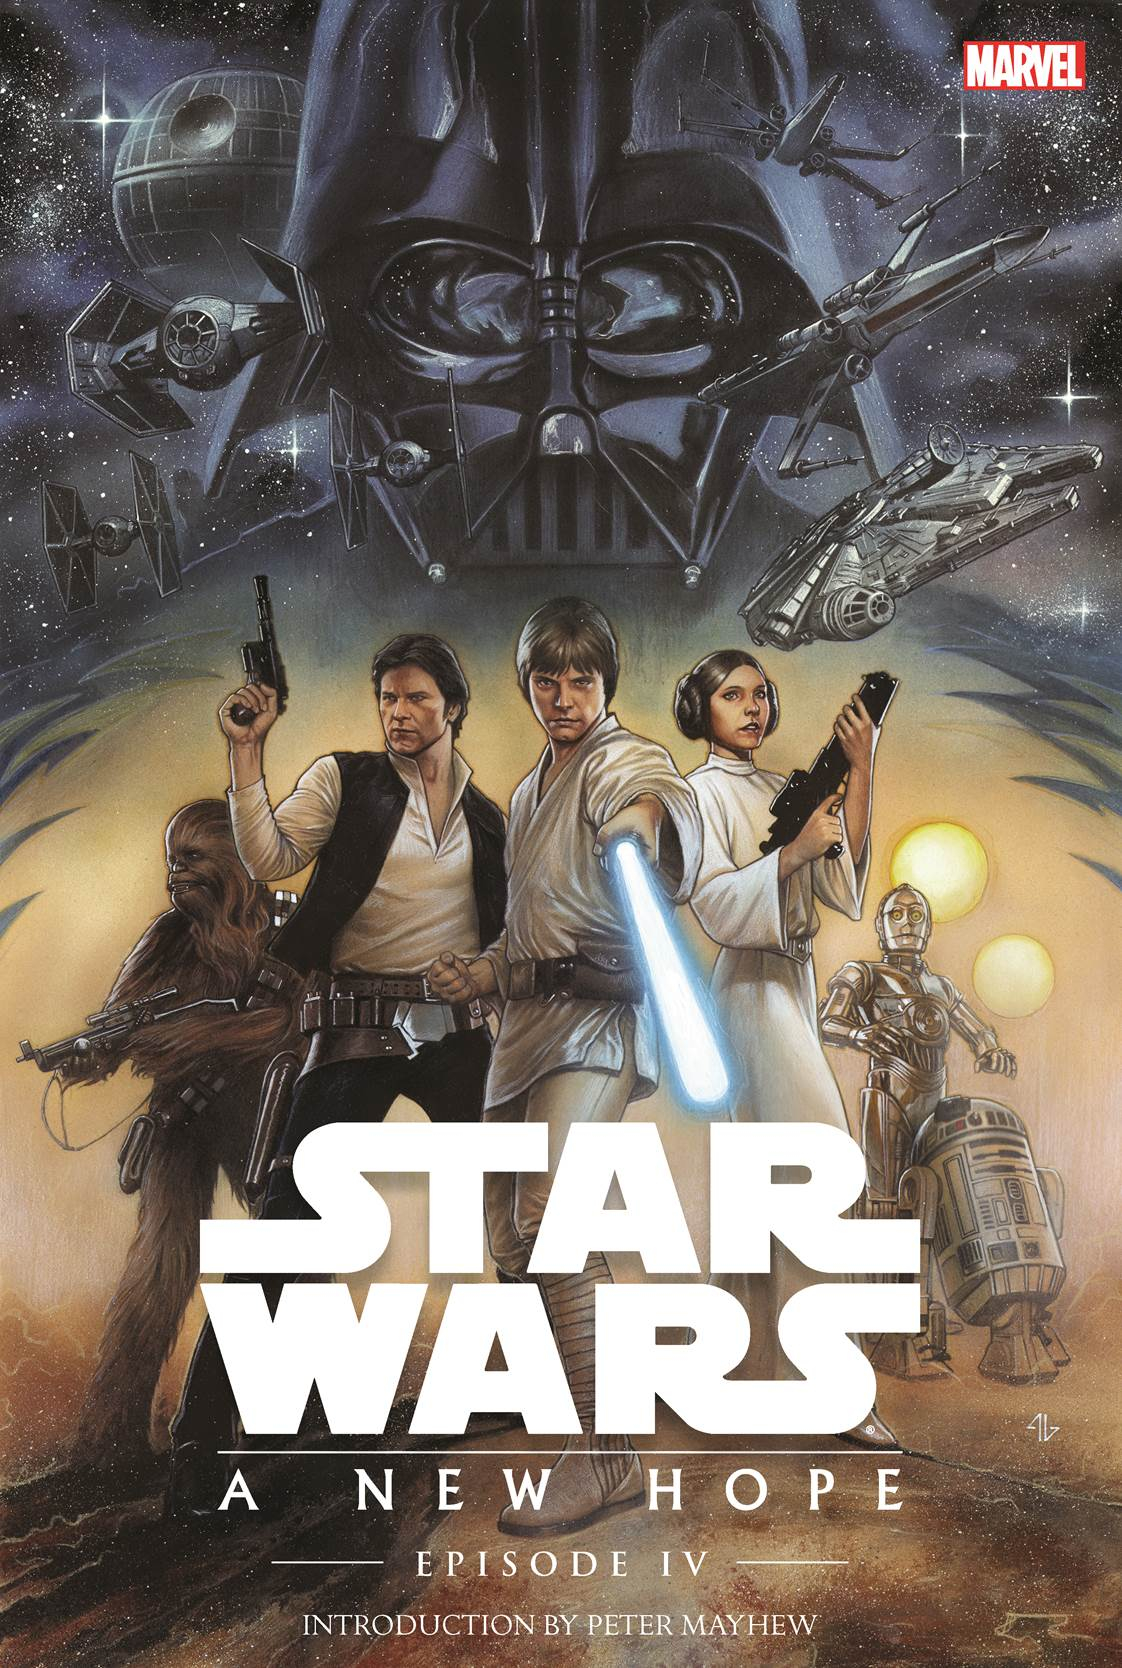 Star Wars Episode Iv New Hope 1977 1 6 Hc Impact Comics